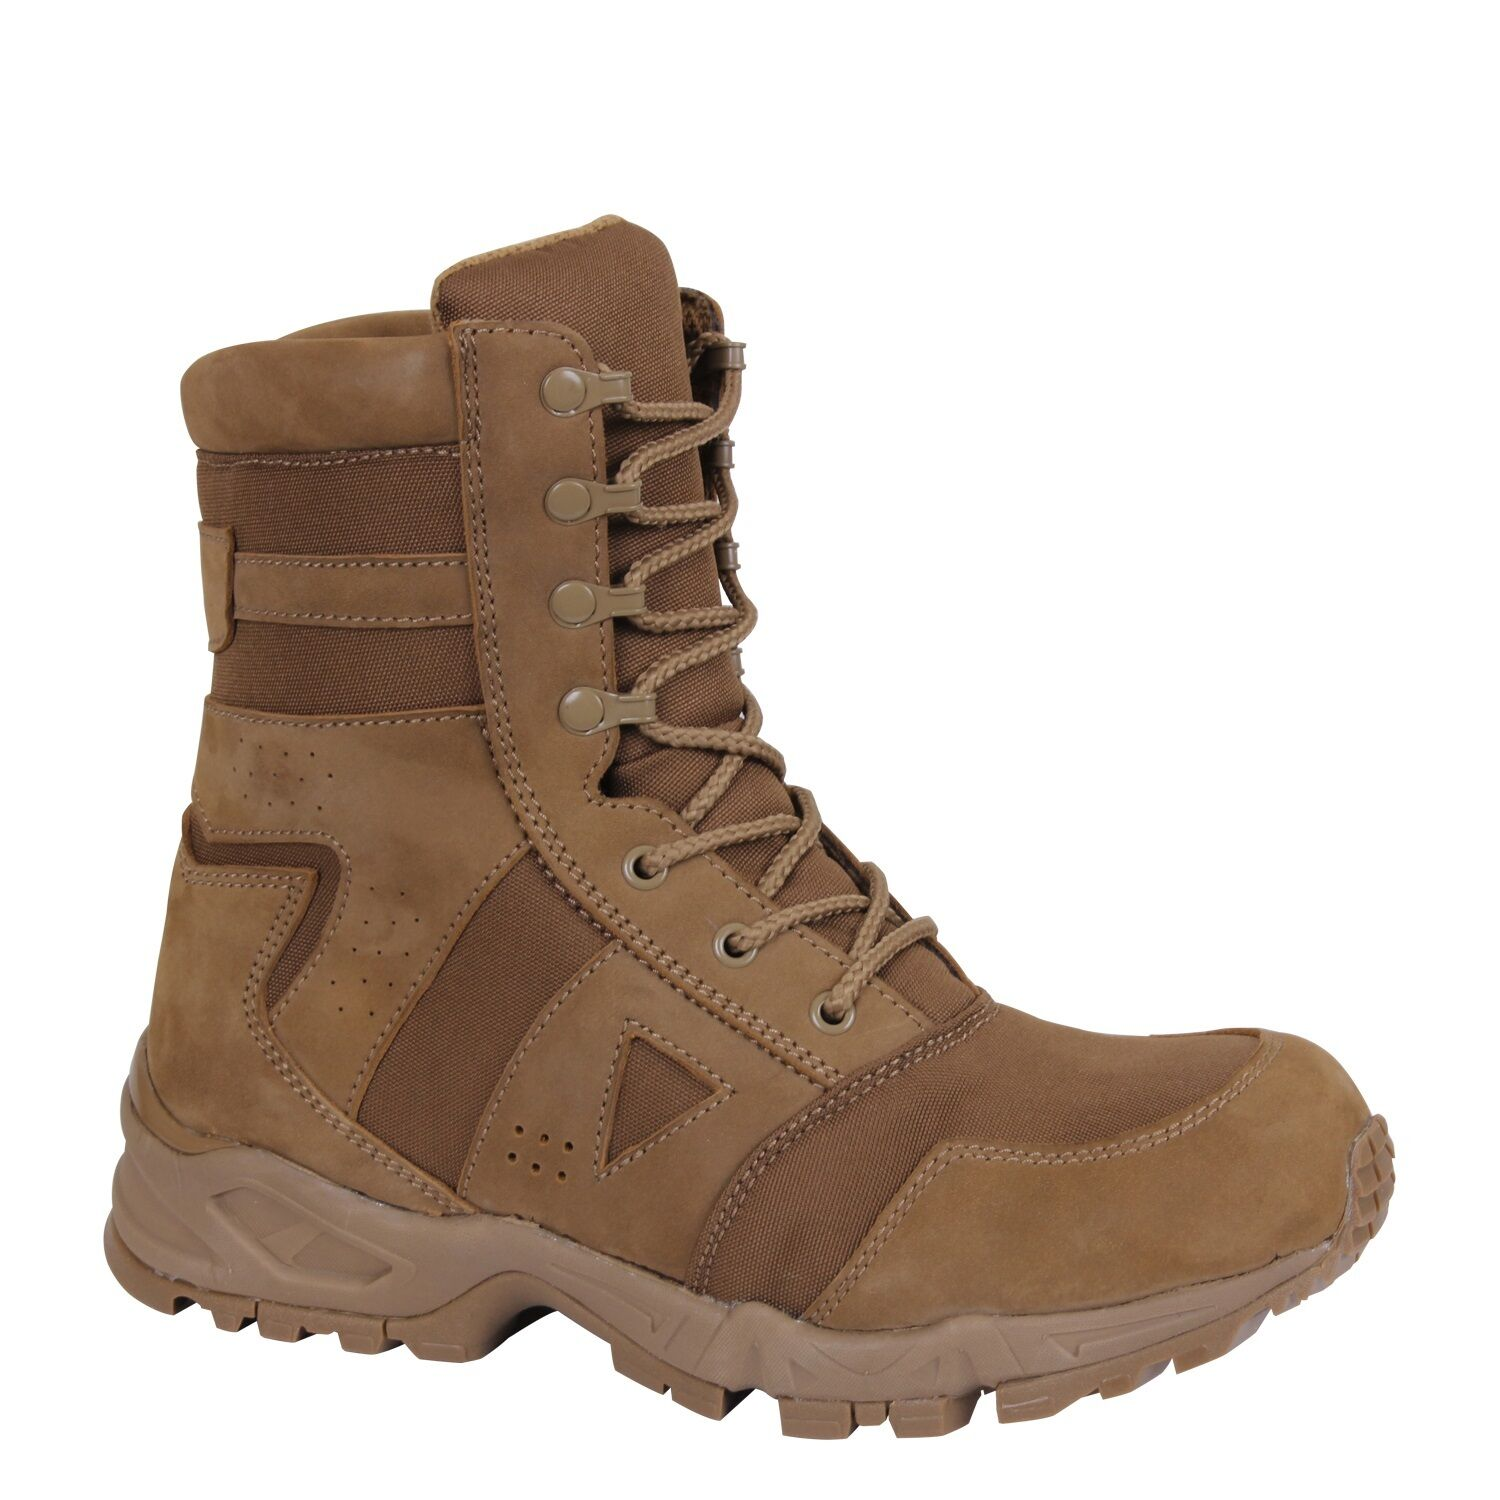 AR 670-1 Coyote Forced Entry Tactical Boots 8